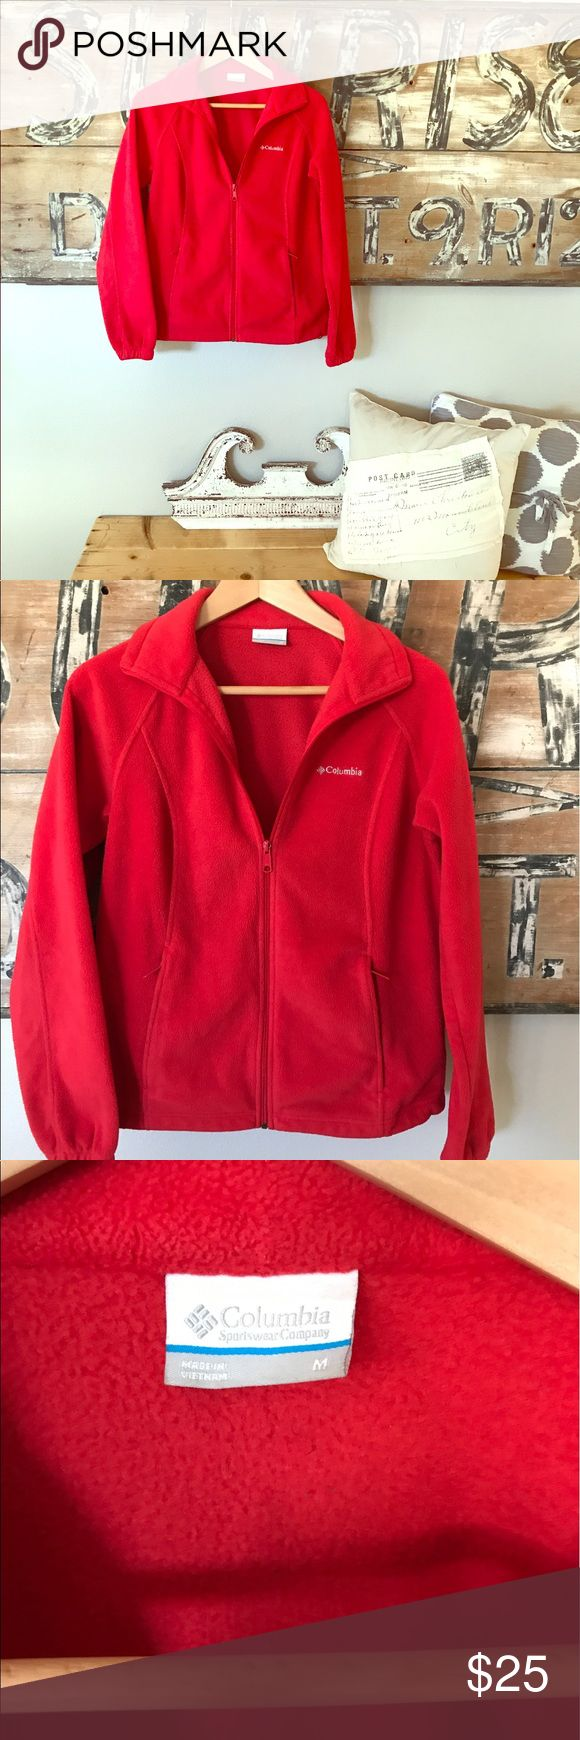 Columbia Sportswear red zip up sweater Small spot on the back Columbia Sweaters